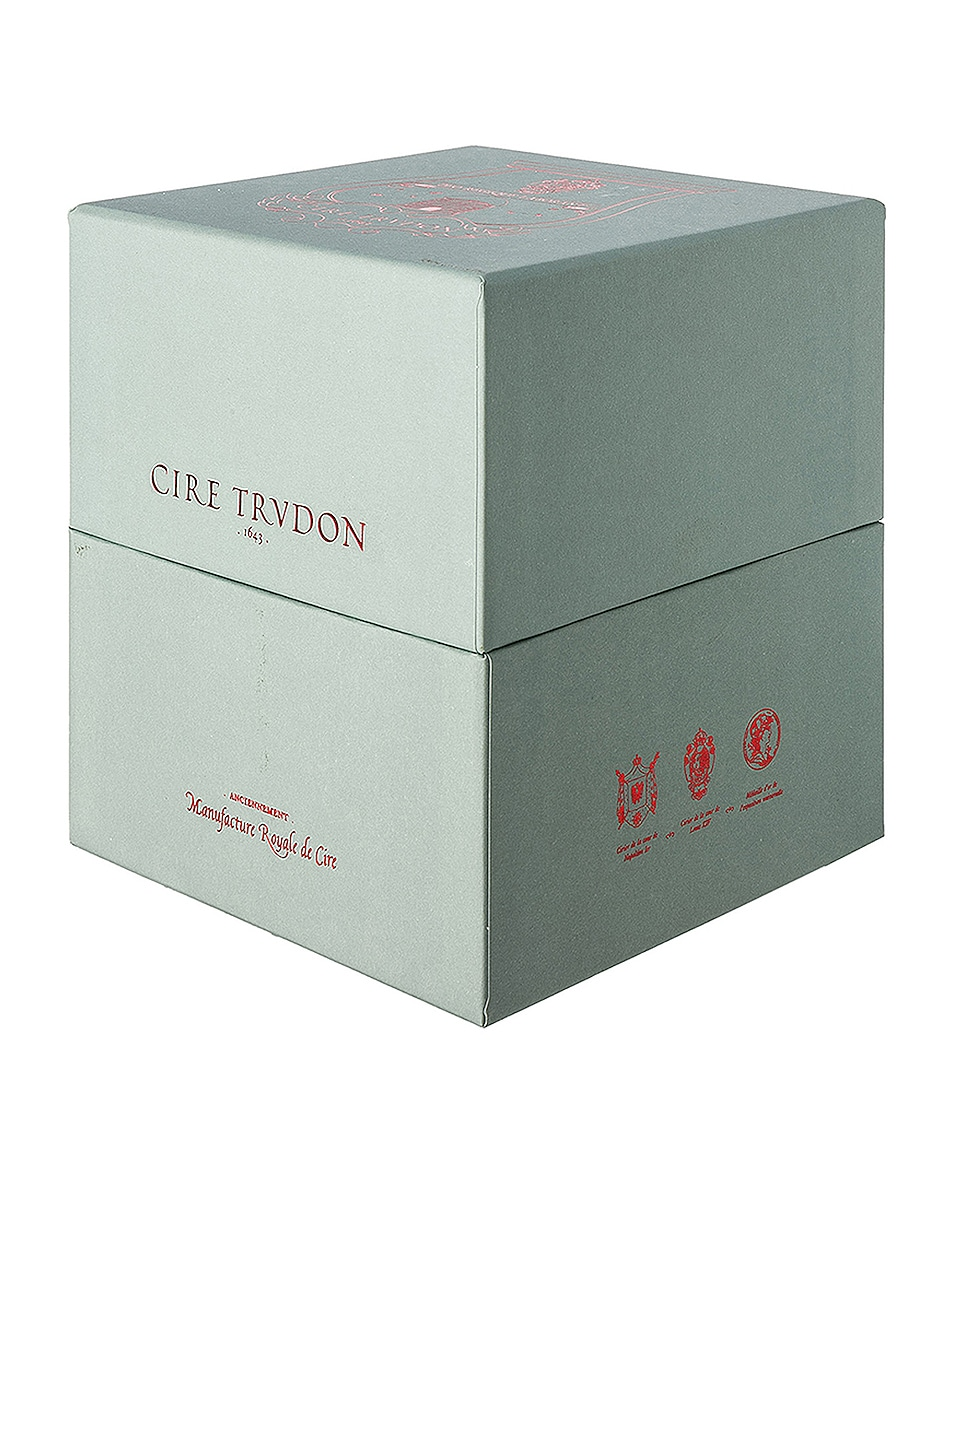 Image 4 of Cire Trudon Abd El Kader Intermediate Scented Candle in Abd El Kader